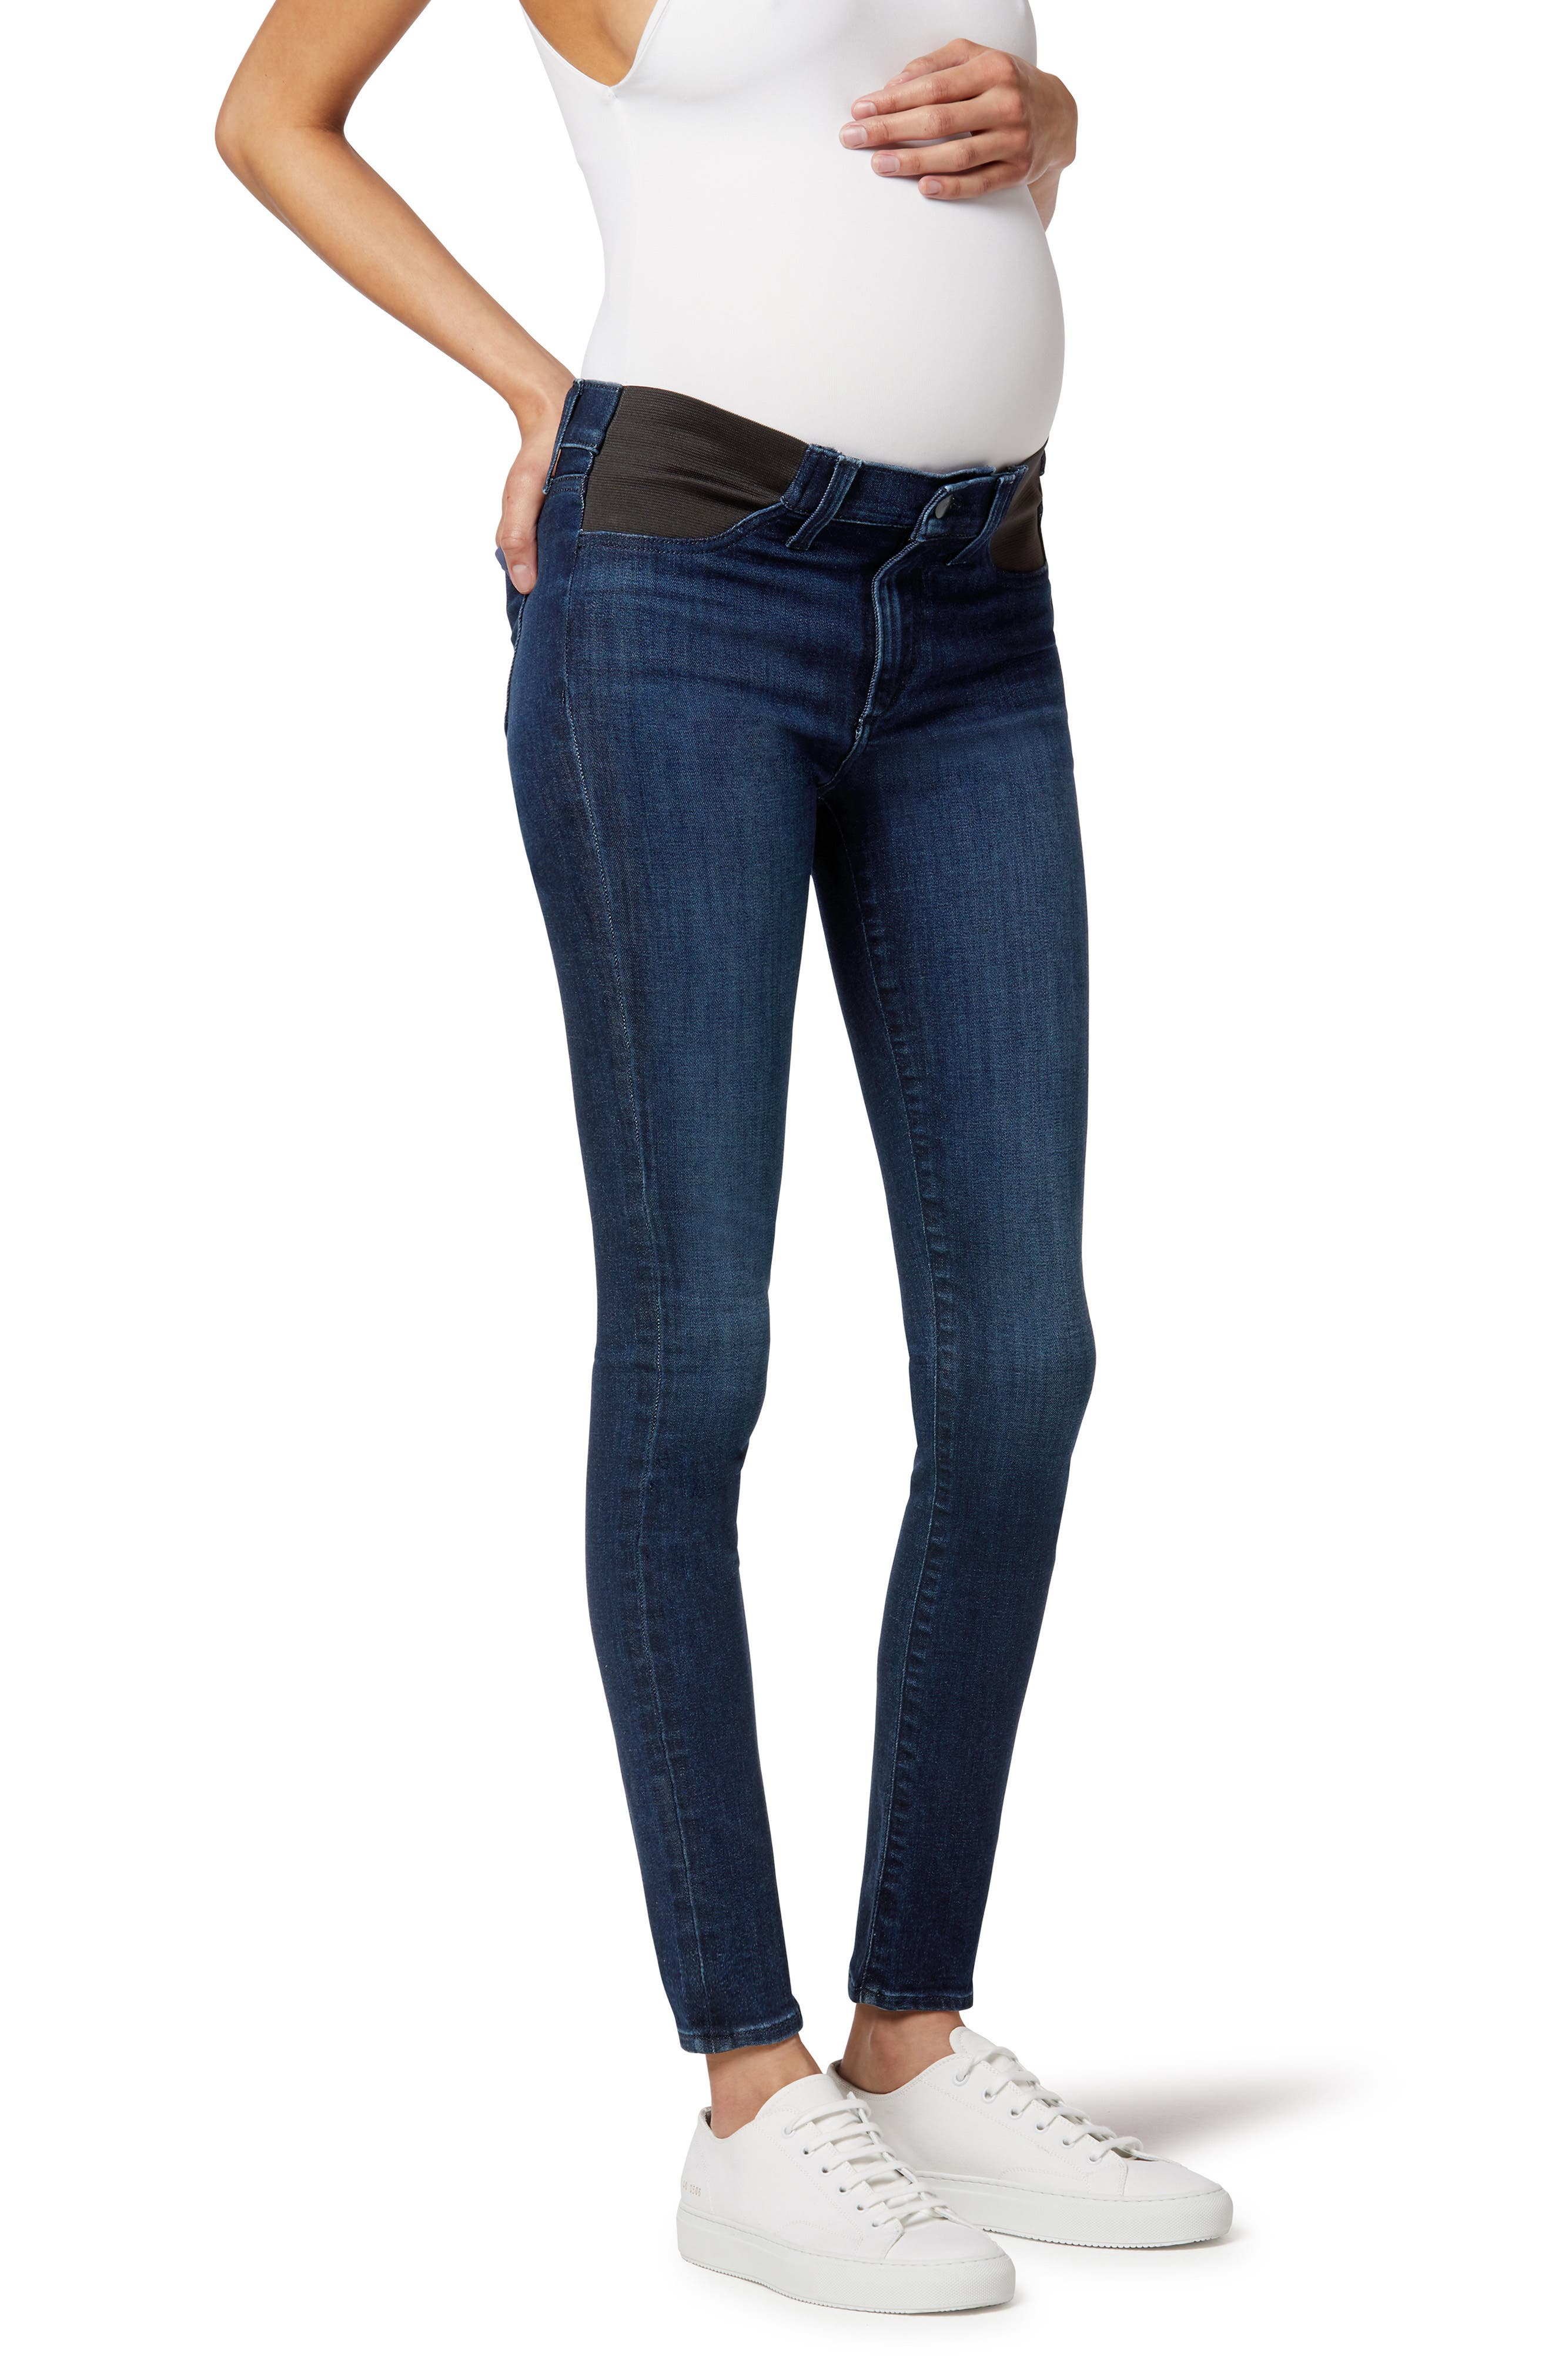 The Icon Ankle Skinny Maternity Jeans